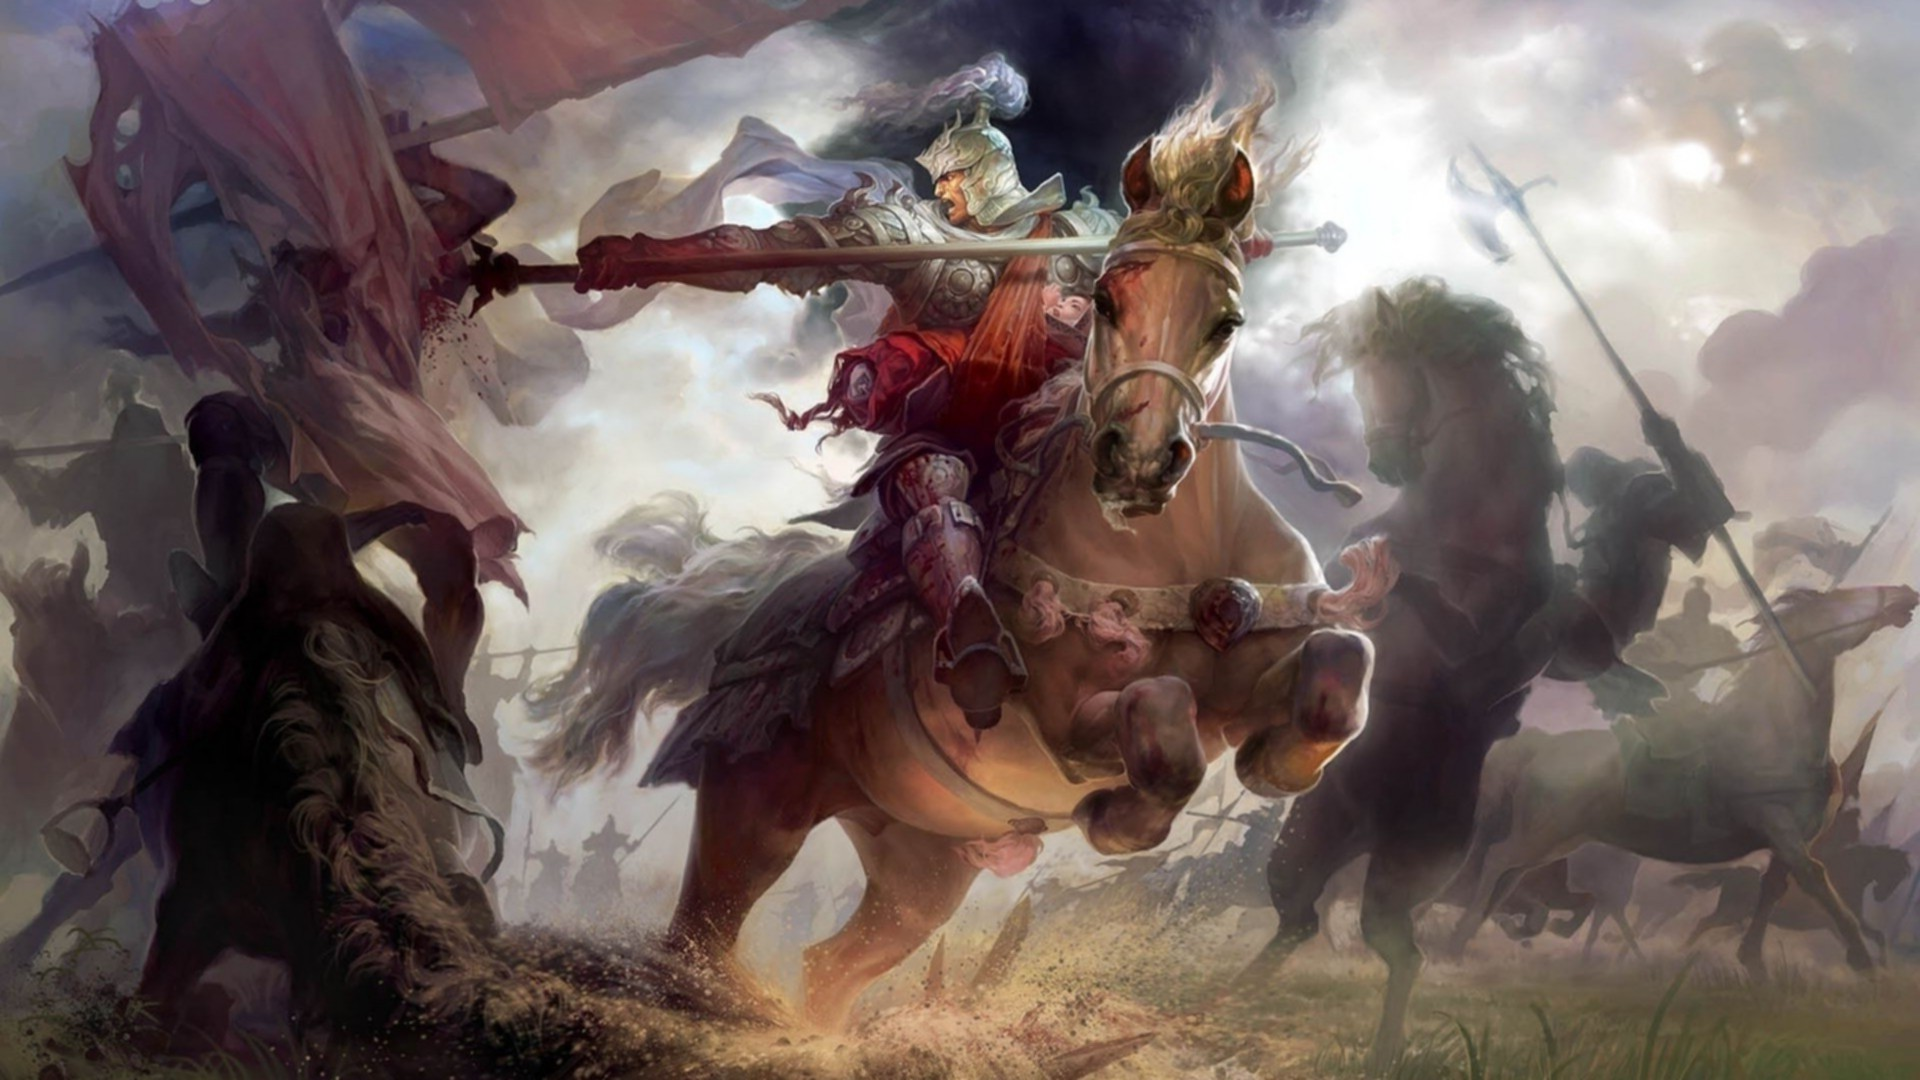 Soldier Girls Wallpapers Knight Spear Fantasy Art Wallpapers Hd Desktop And